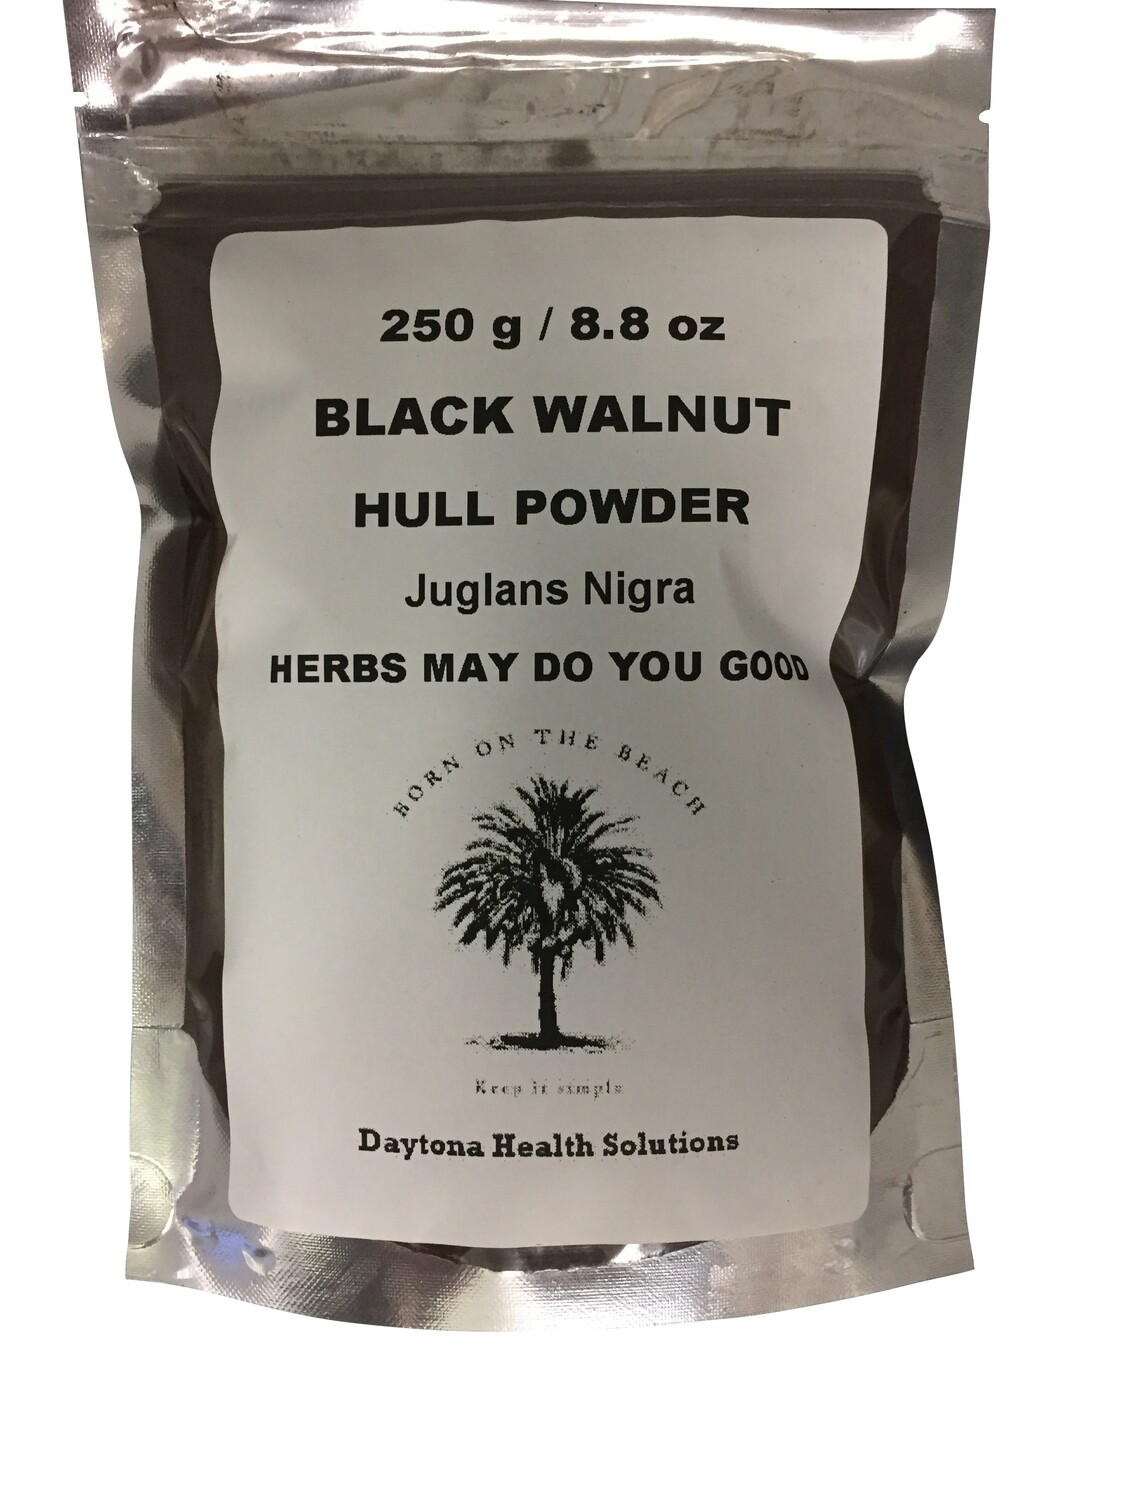 Black Walnut Hull Powder 250 g / 8.8 oz